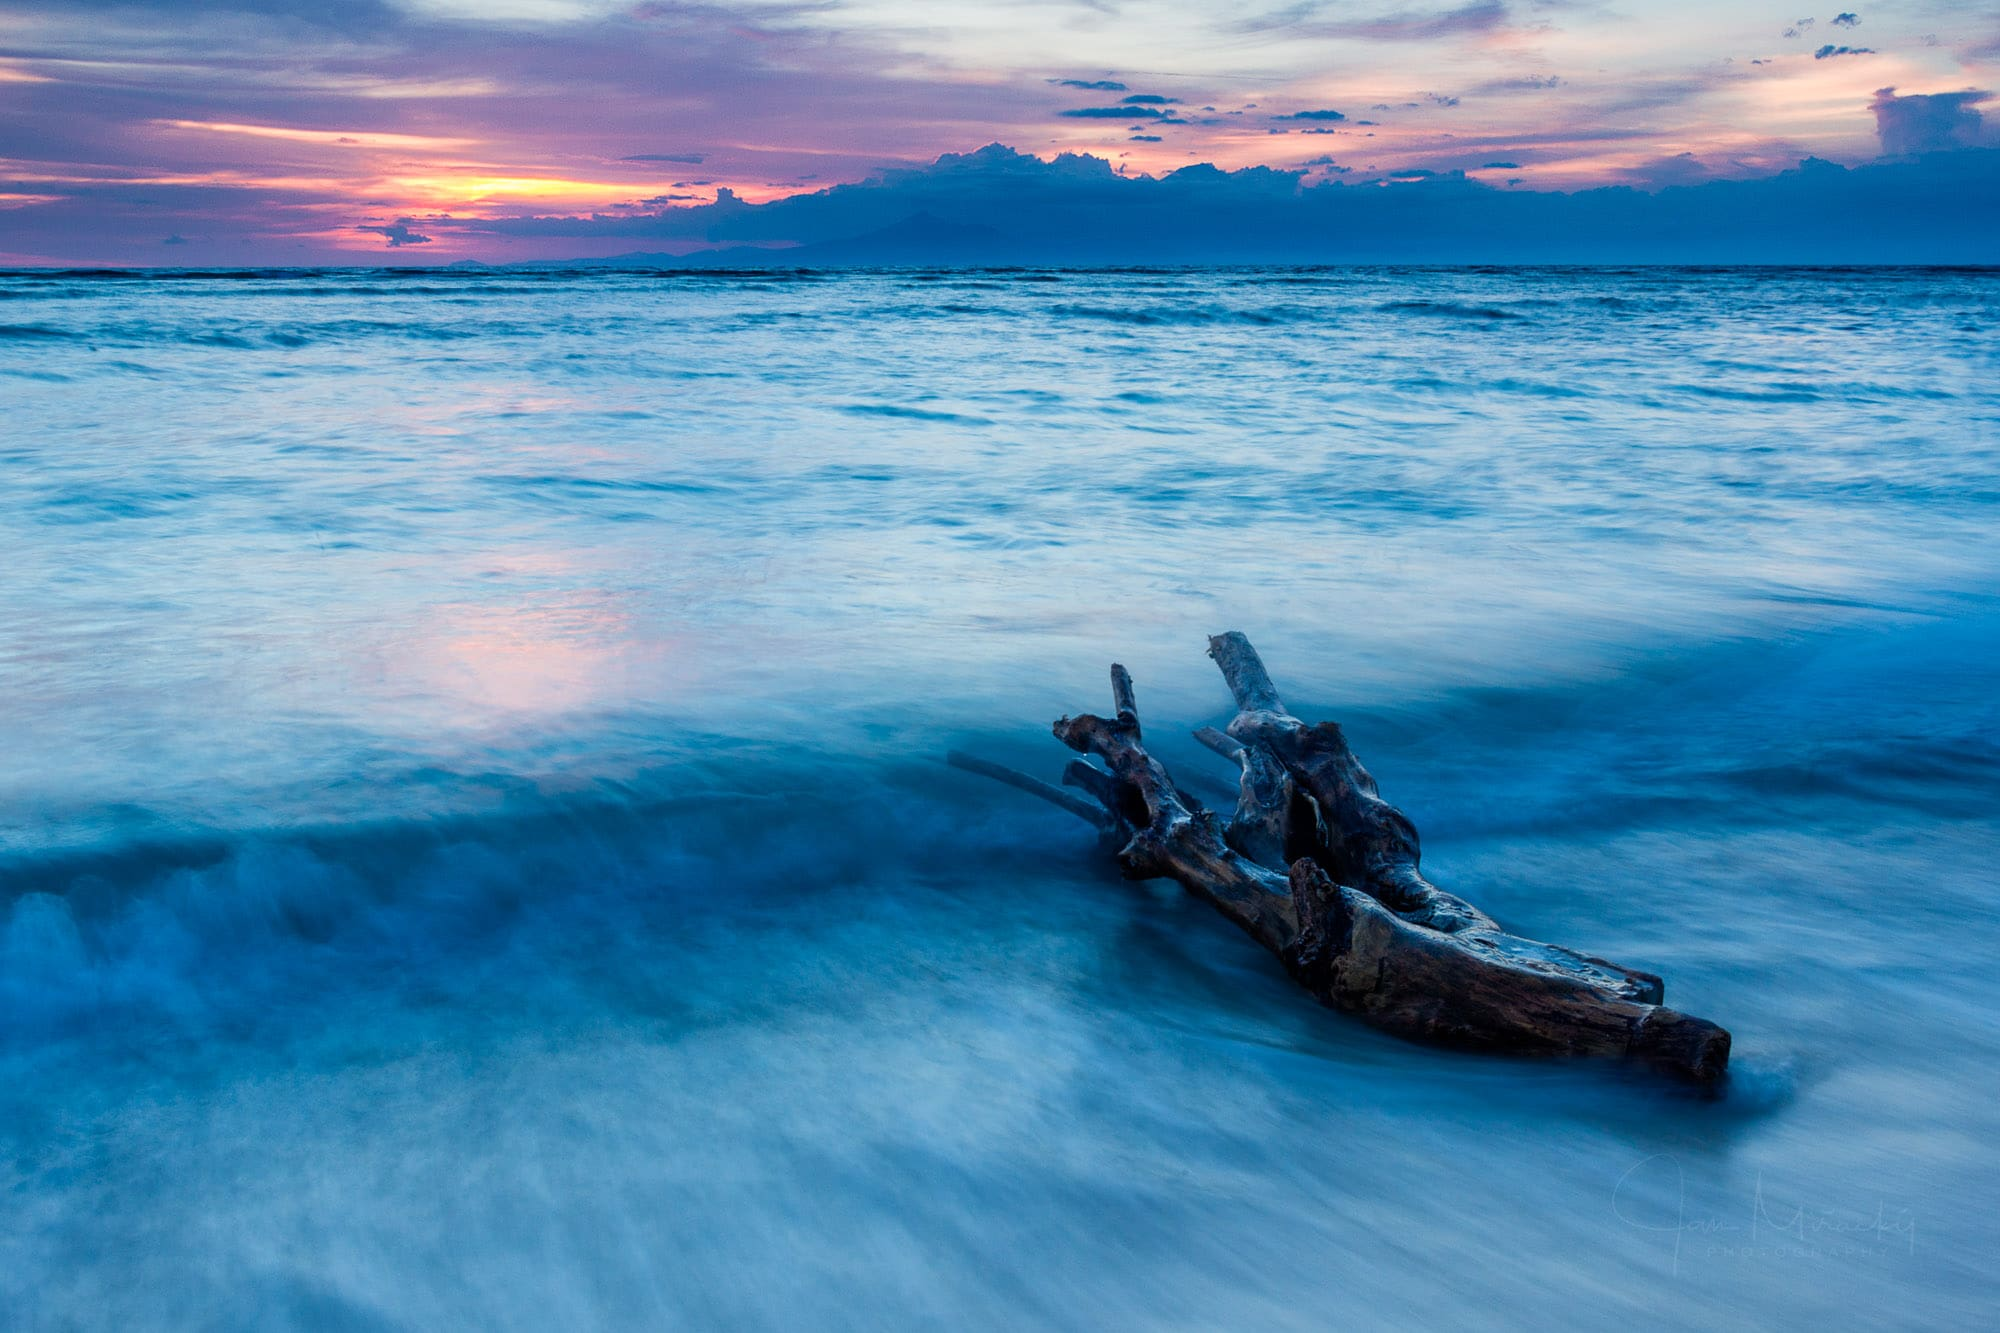 Seascape at Gili Trawangan at sunset